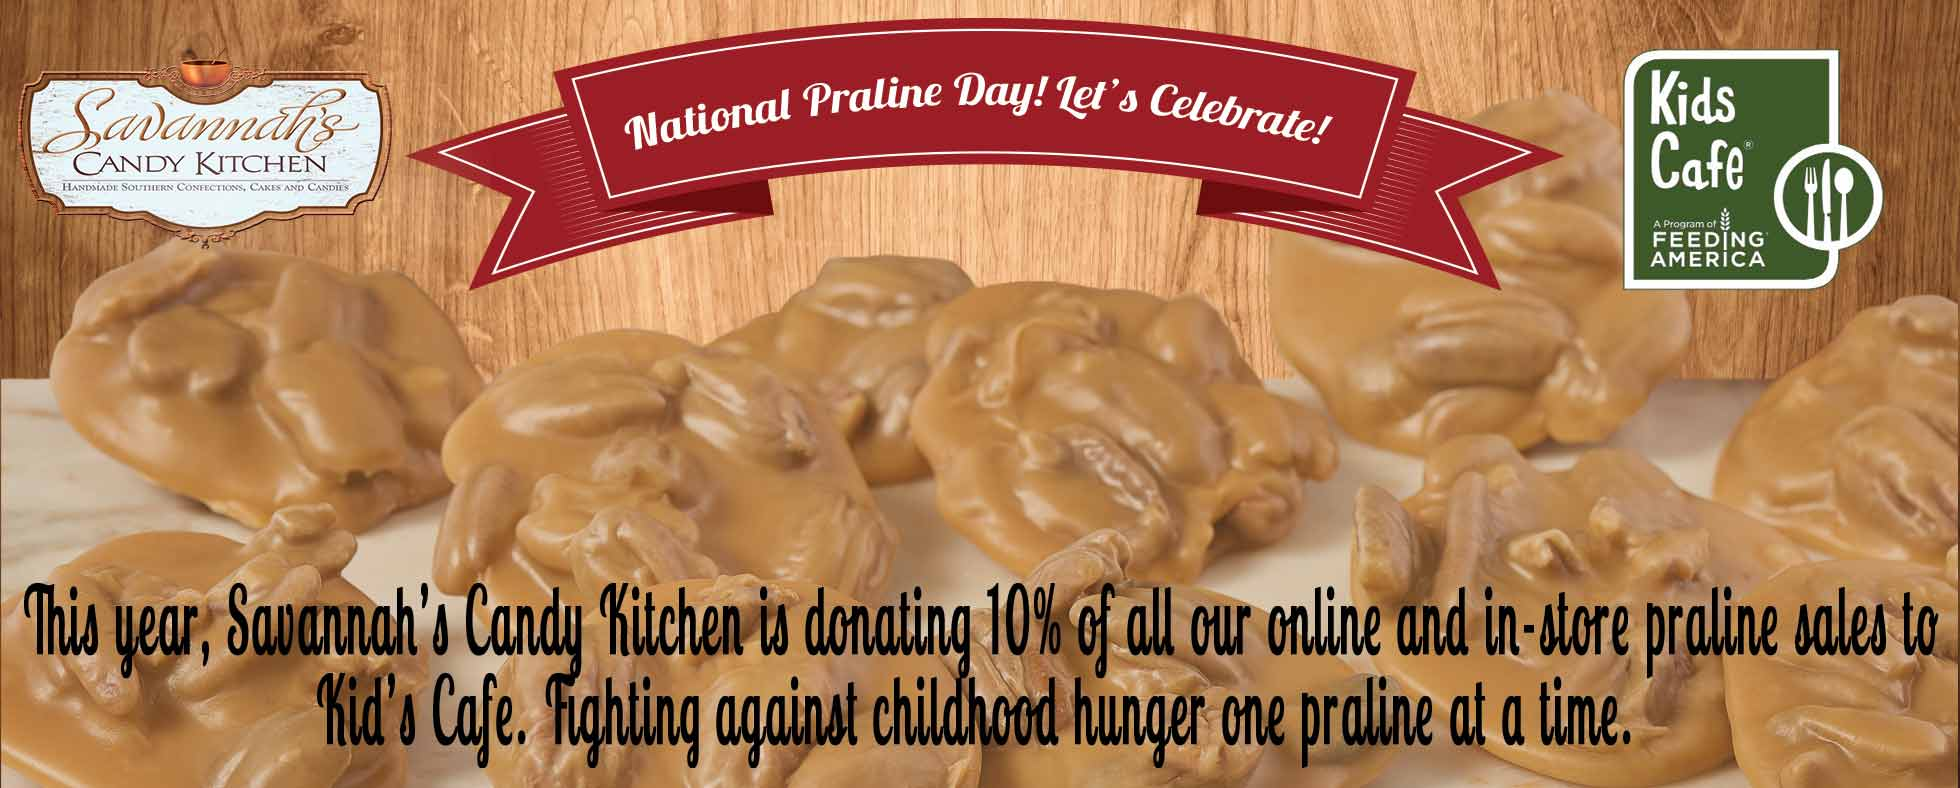 National Praline Day